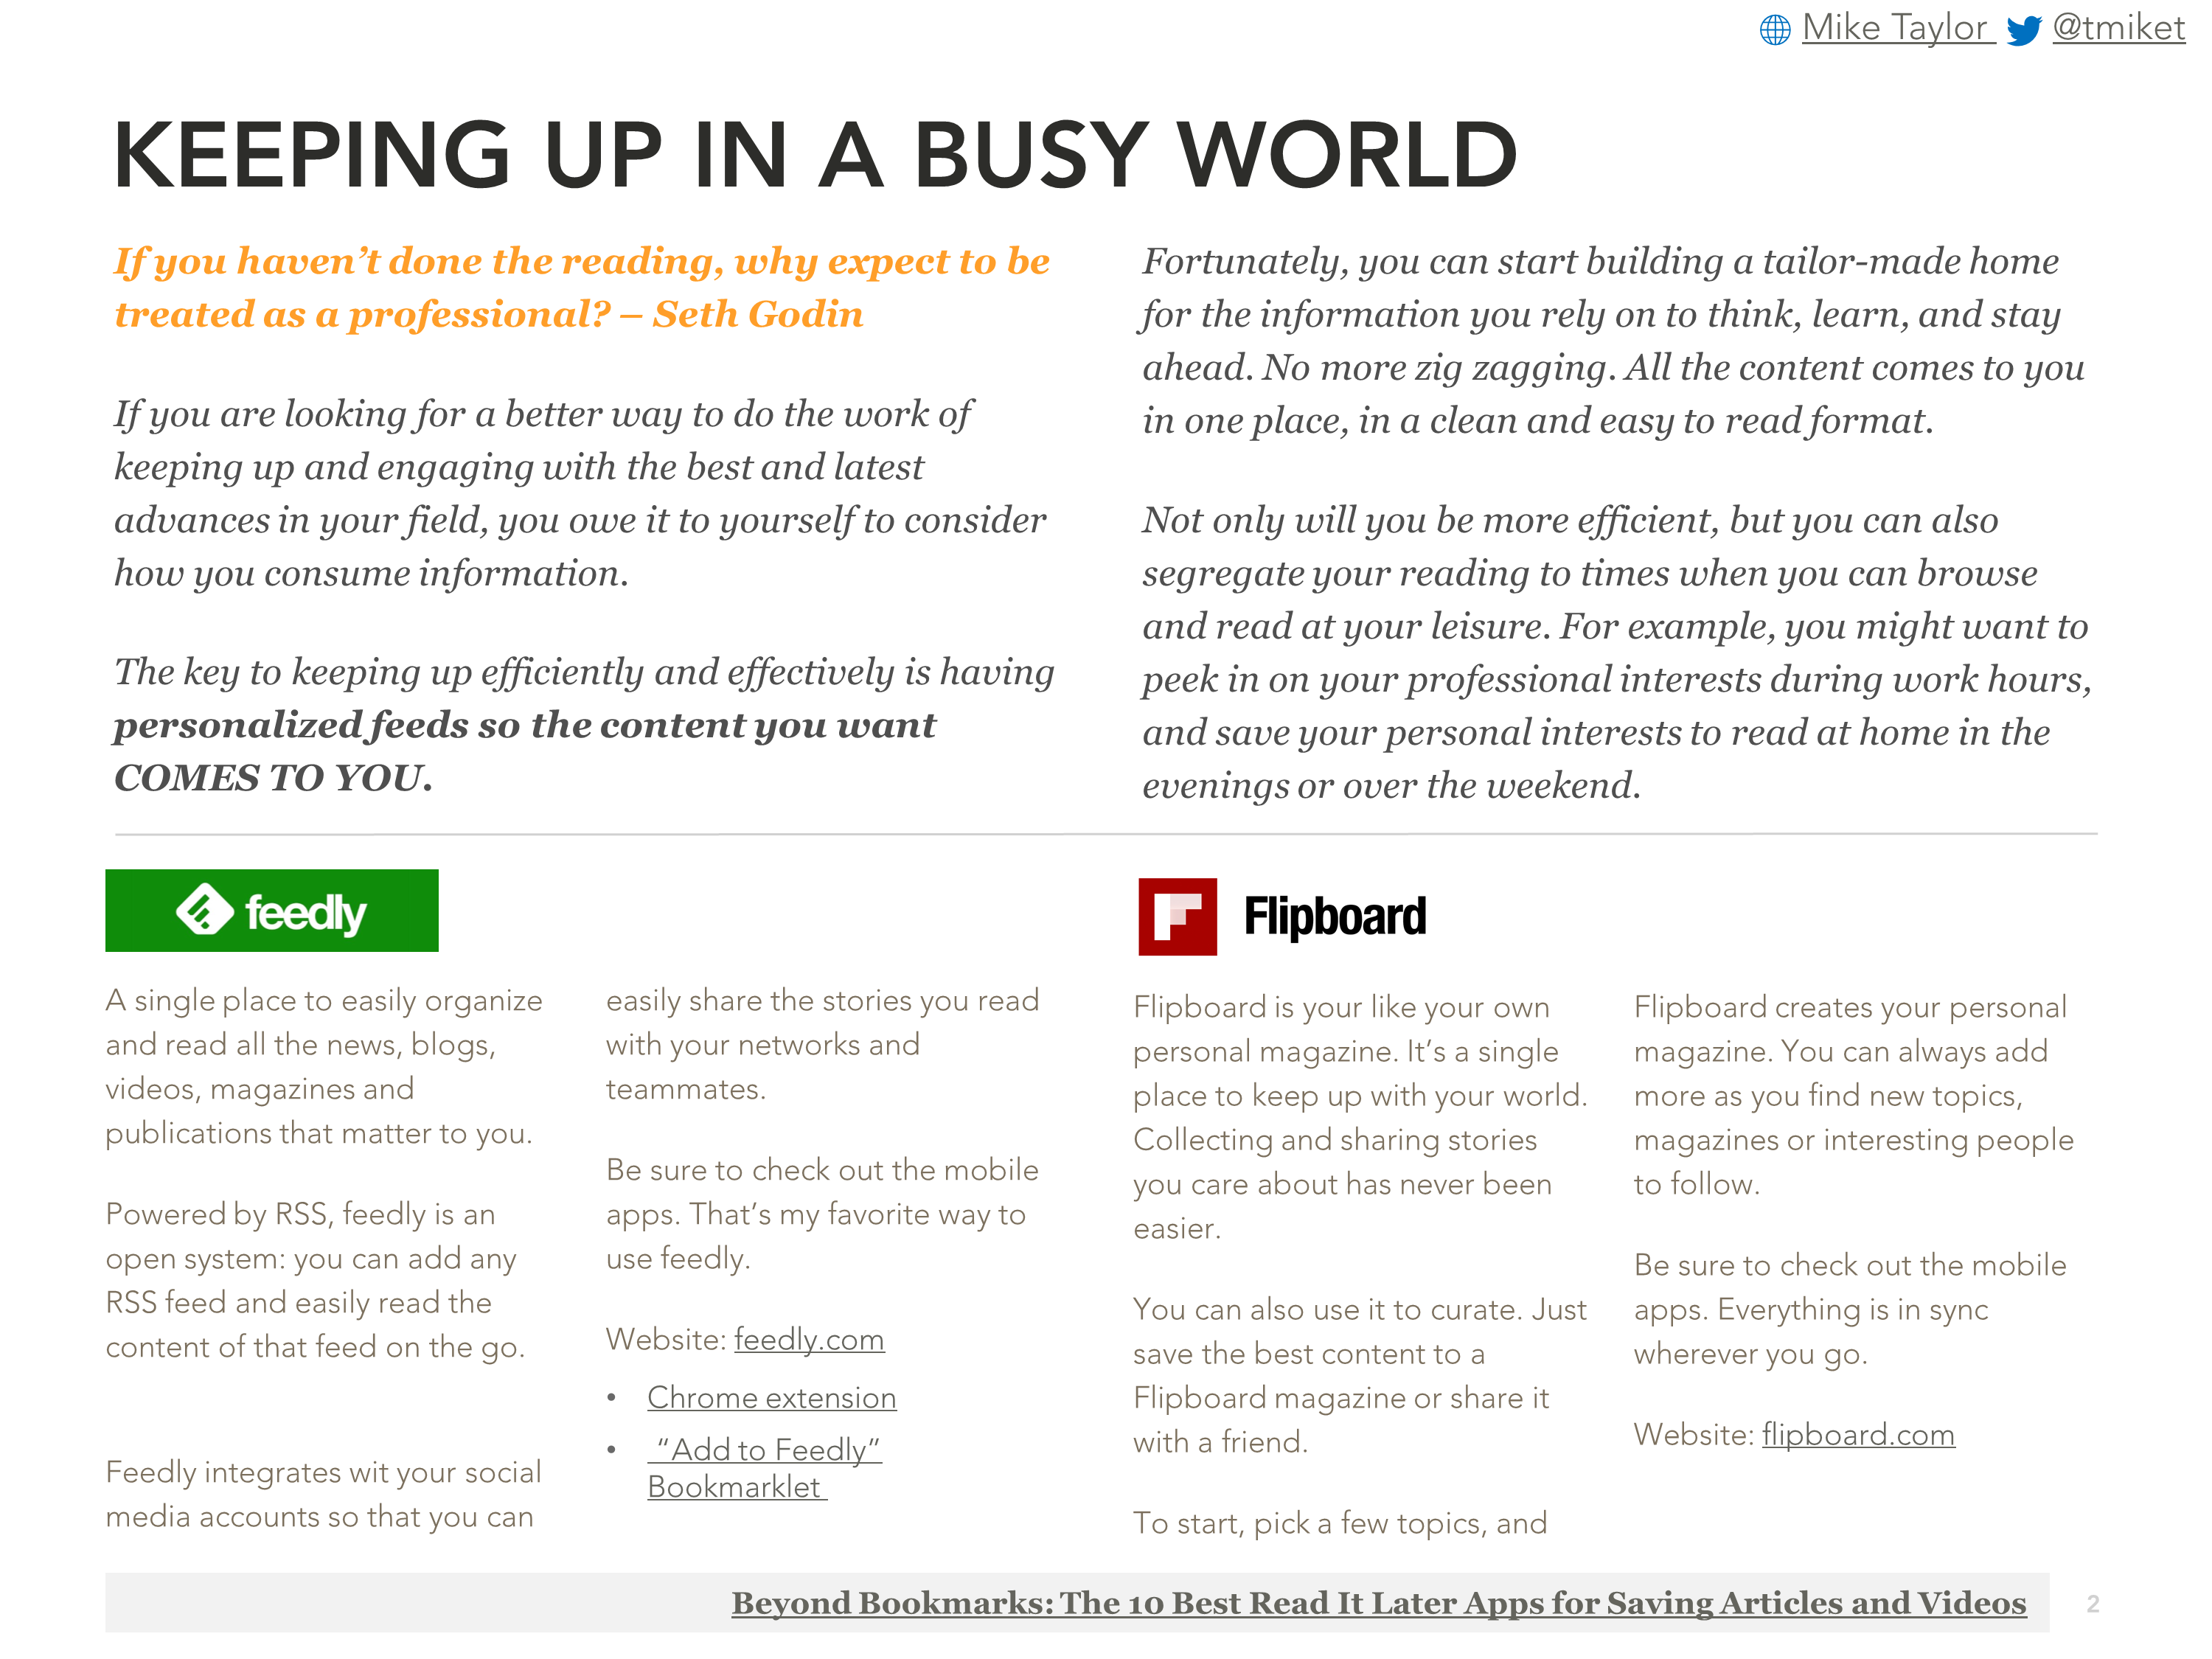 TAKE AWAY: Creating Your Own Personalized Information Feed